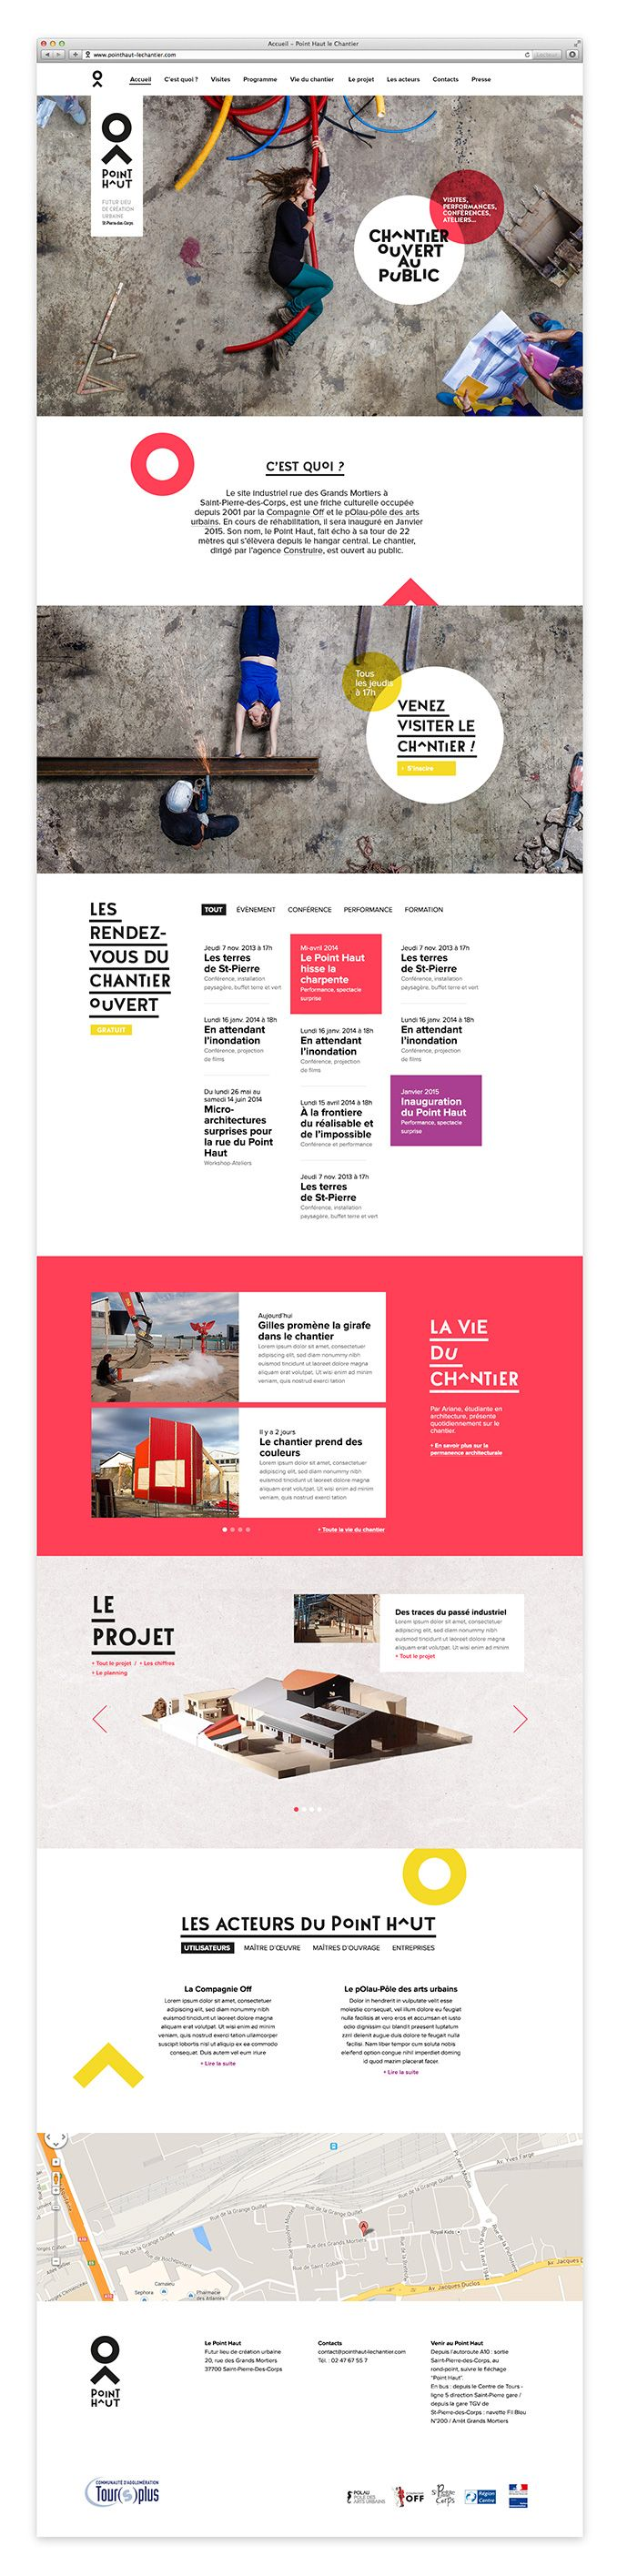 Webdesign du site du chantier ouvert du Point Haut